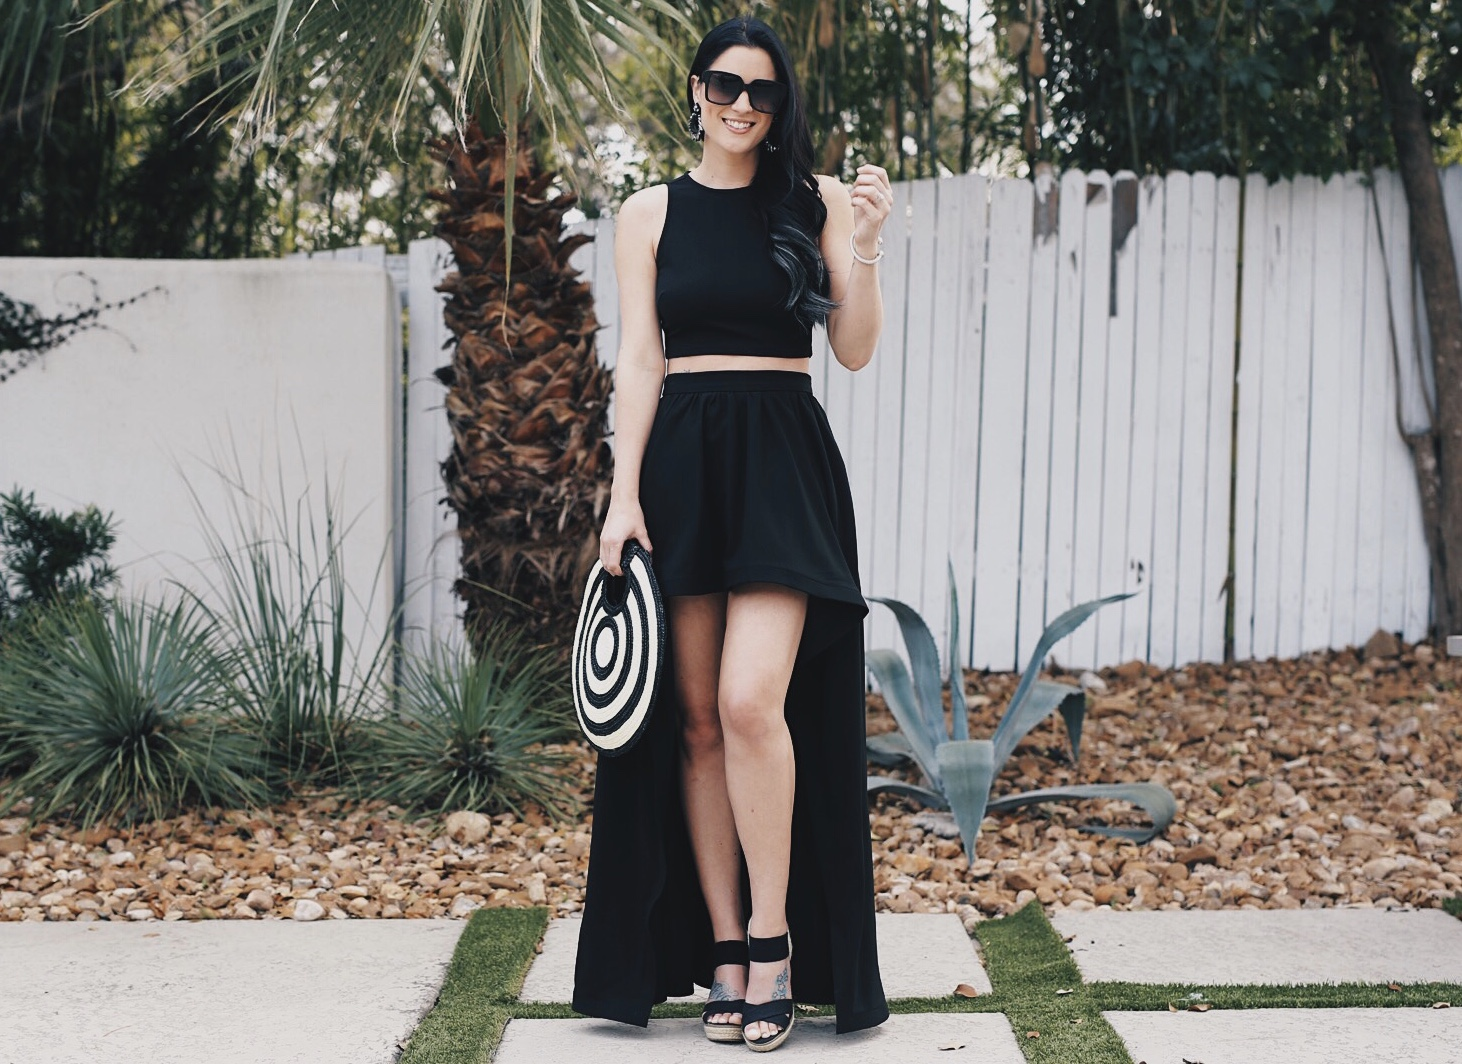 DTKAustin shares one of her most dramatic summer looks; a back two piece, high low skirt set from Akira with a straw round bag from Anthropologie.